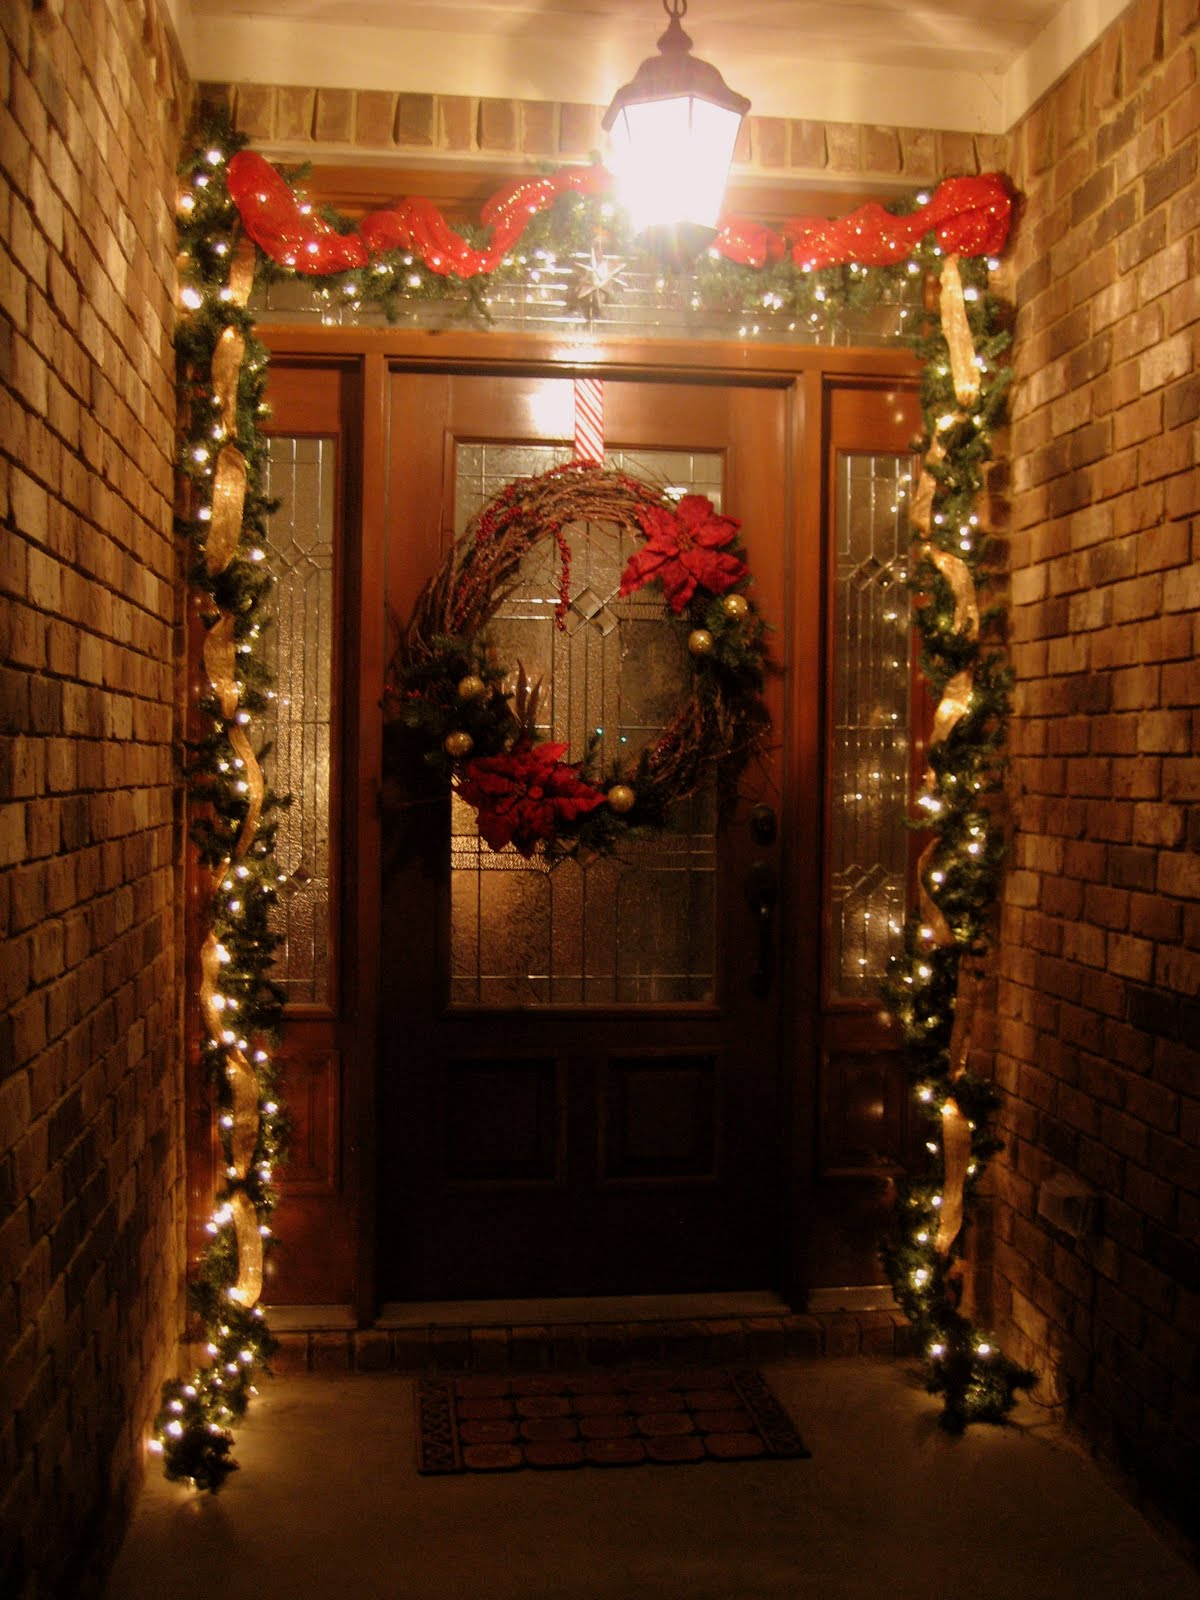 35 Front Door Christmas Decorations Ideas